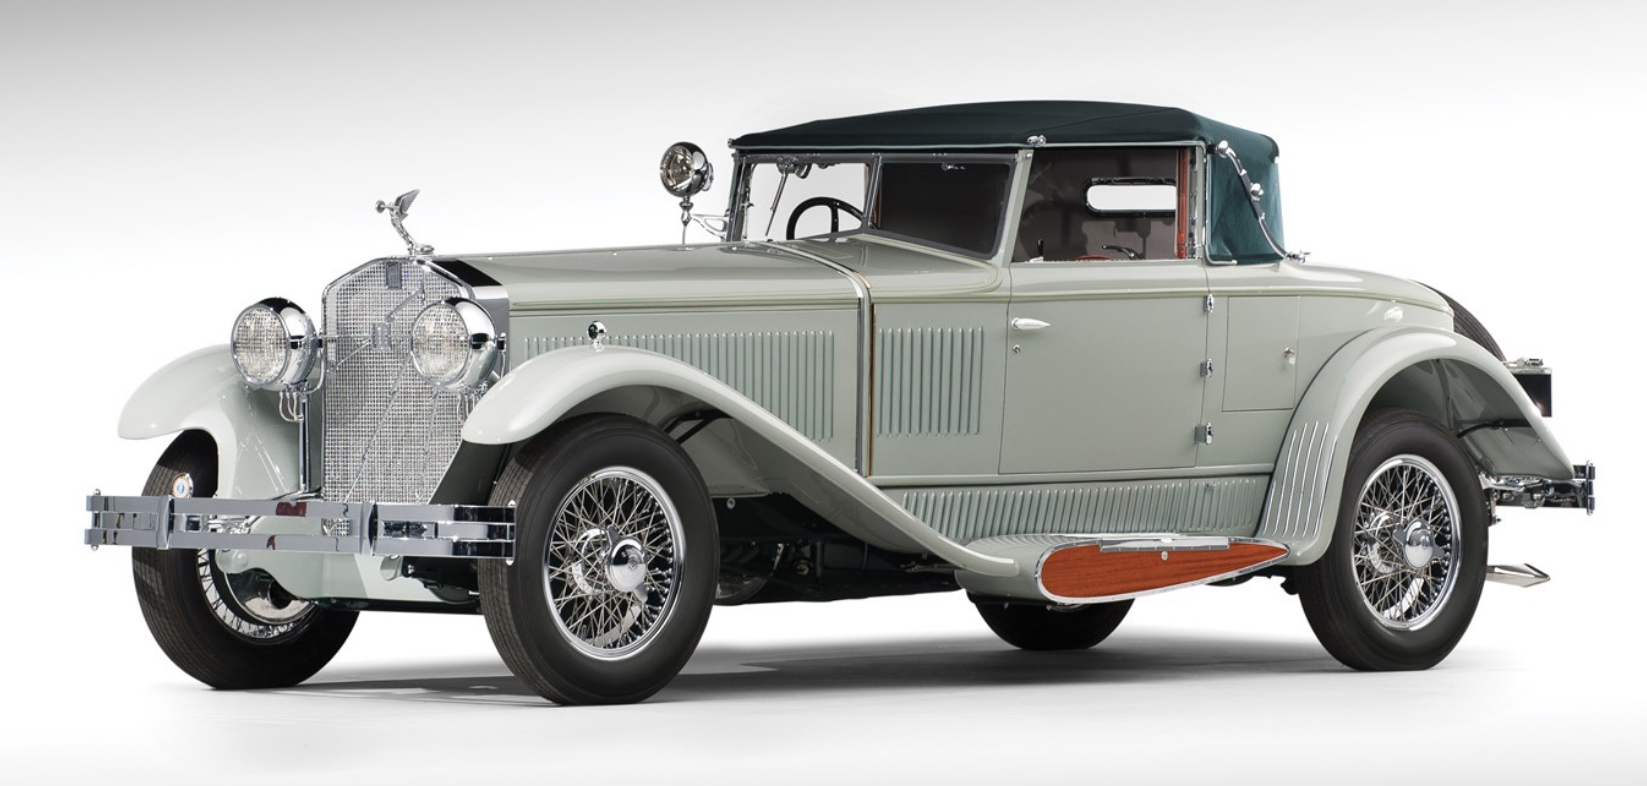 RM Sotheby's Amelia Island - 1930 Isotta Fraschini Tipo 8A S Boattail Cabriolet by Castagna ©2018 Courtesy of RM Sotheby's